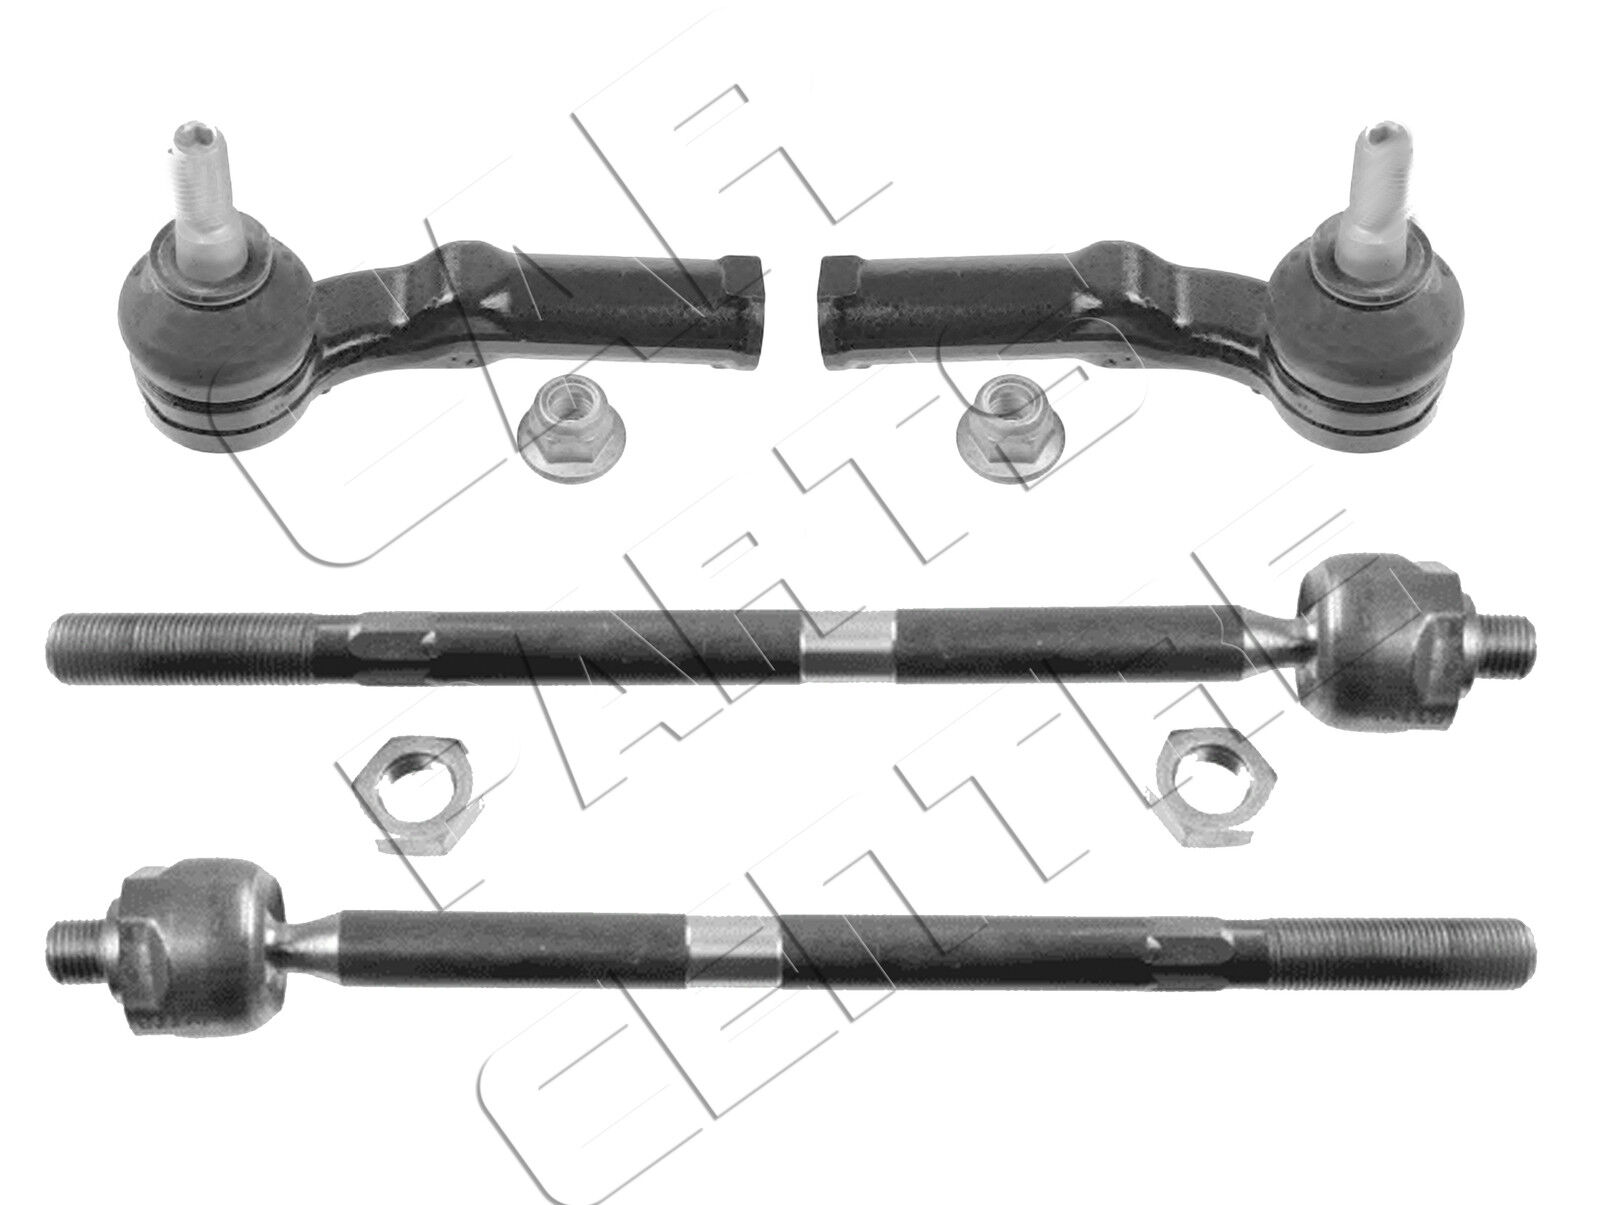 2 X INNER STEERING TIE TRACK ROD RACK ENDS FOR MAZDA 6 2008-2013 NEW 2x OUTER